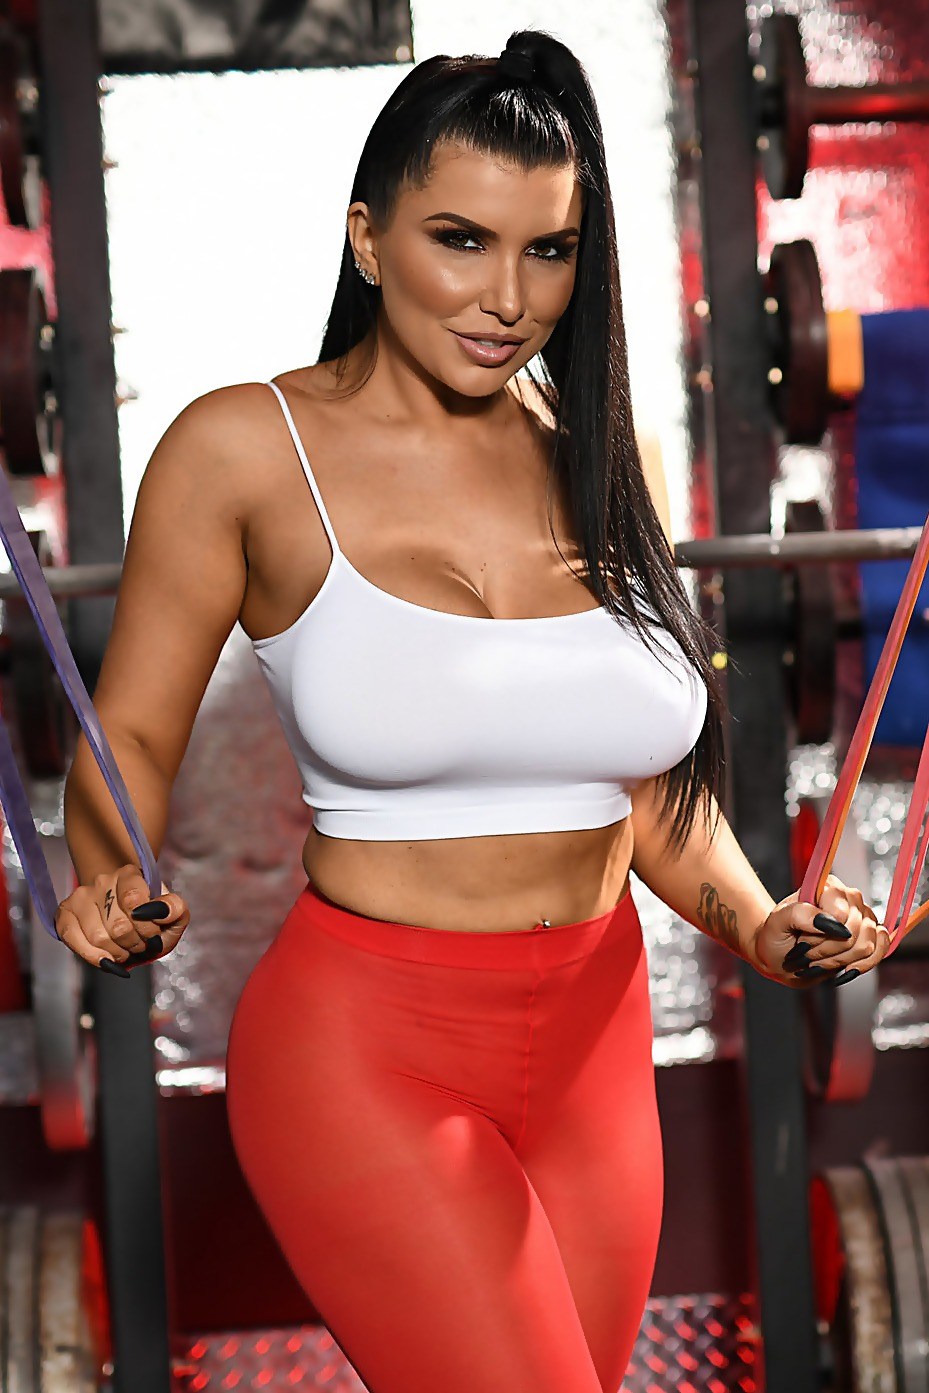 Romi Rain In The Gym